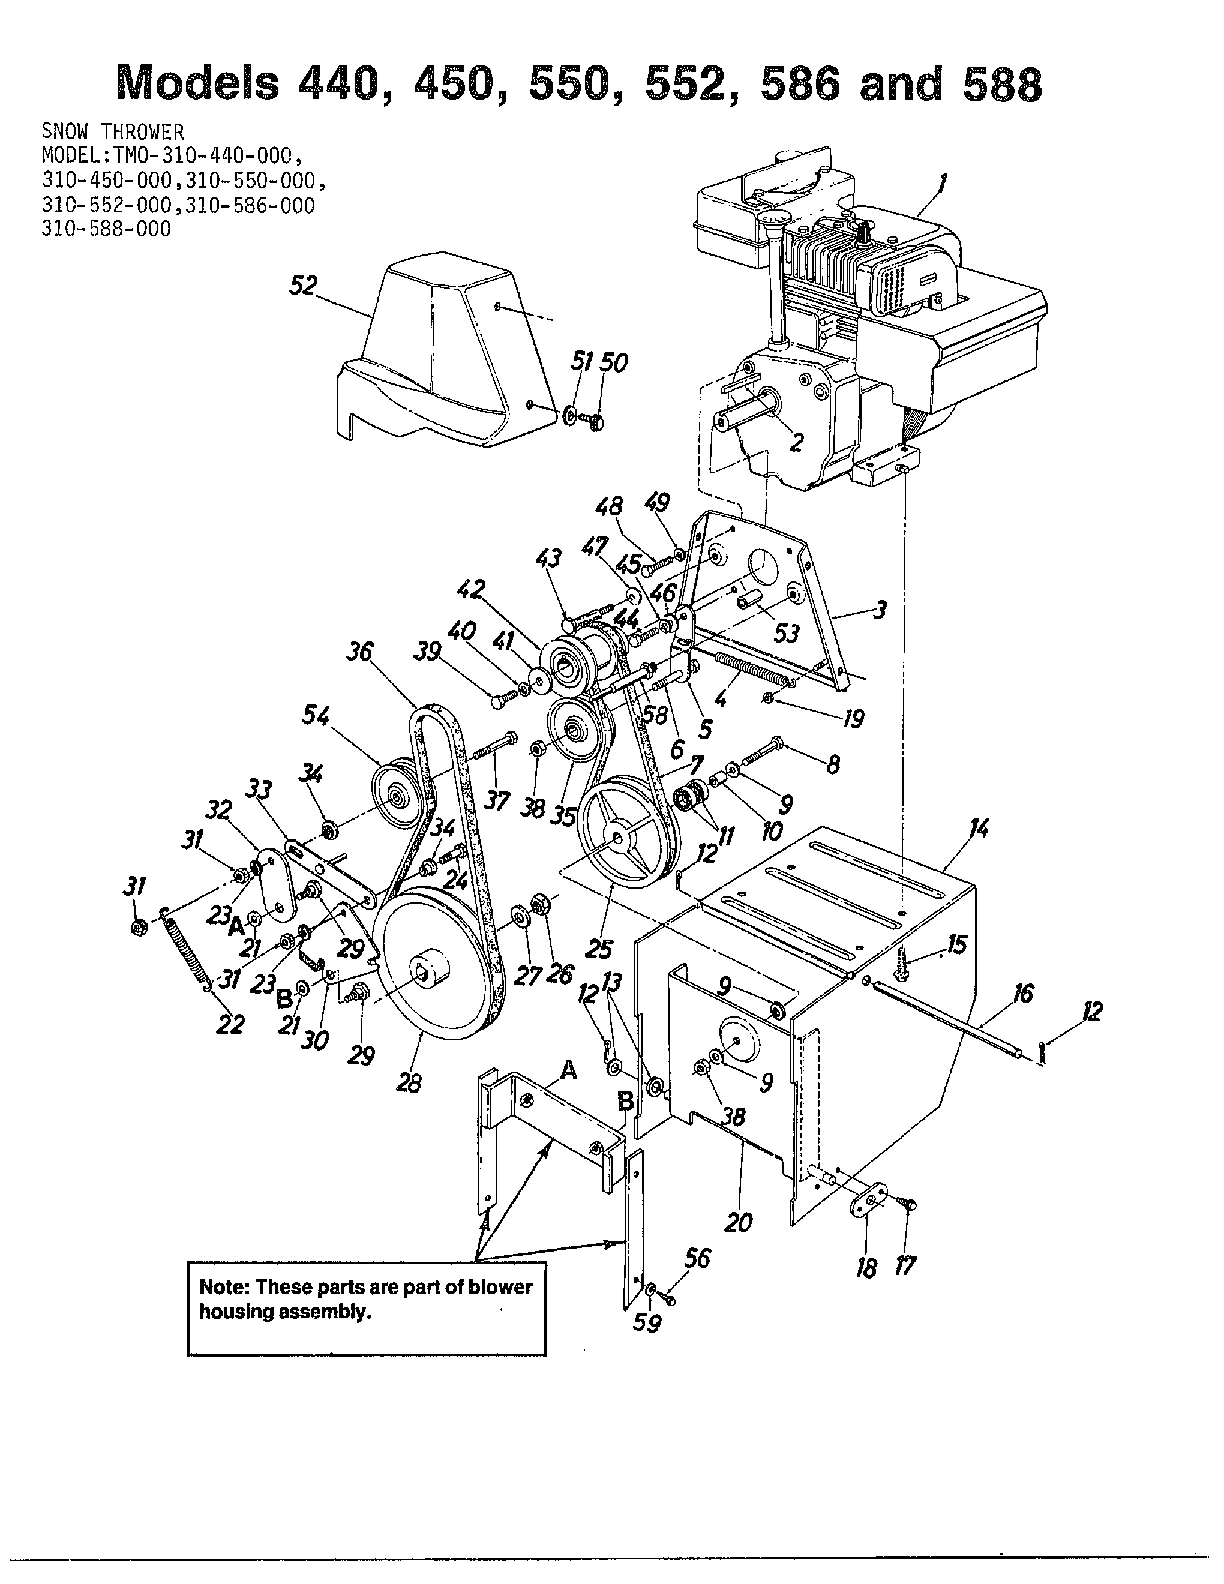 SNOW THROWERS Page 3 Diagram & Parts List for Model